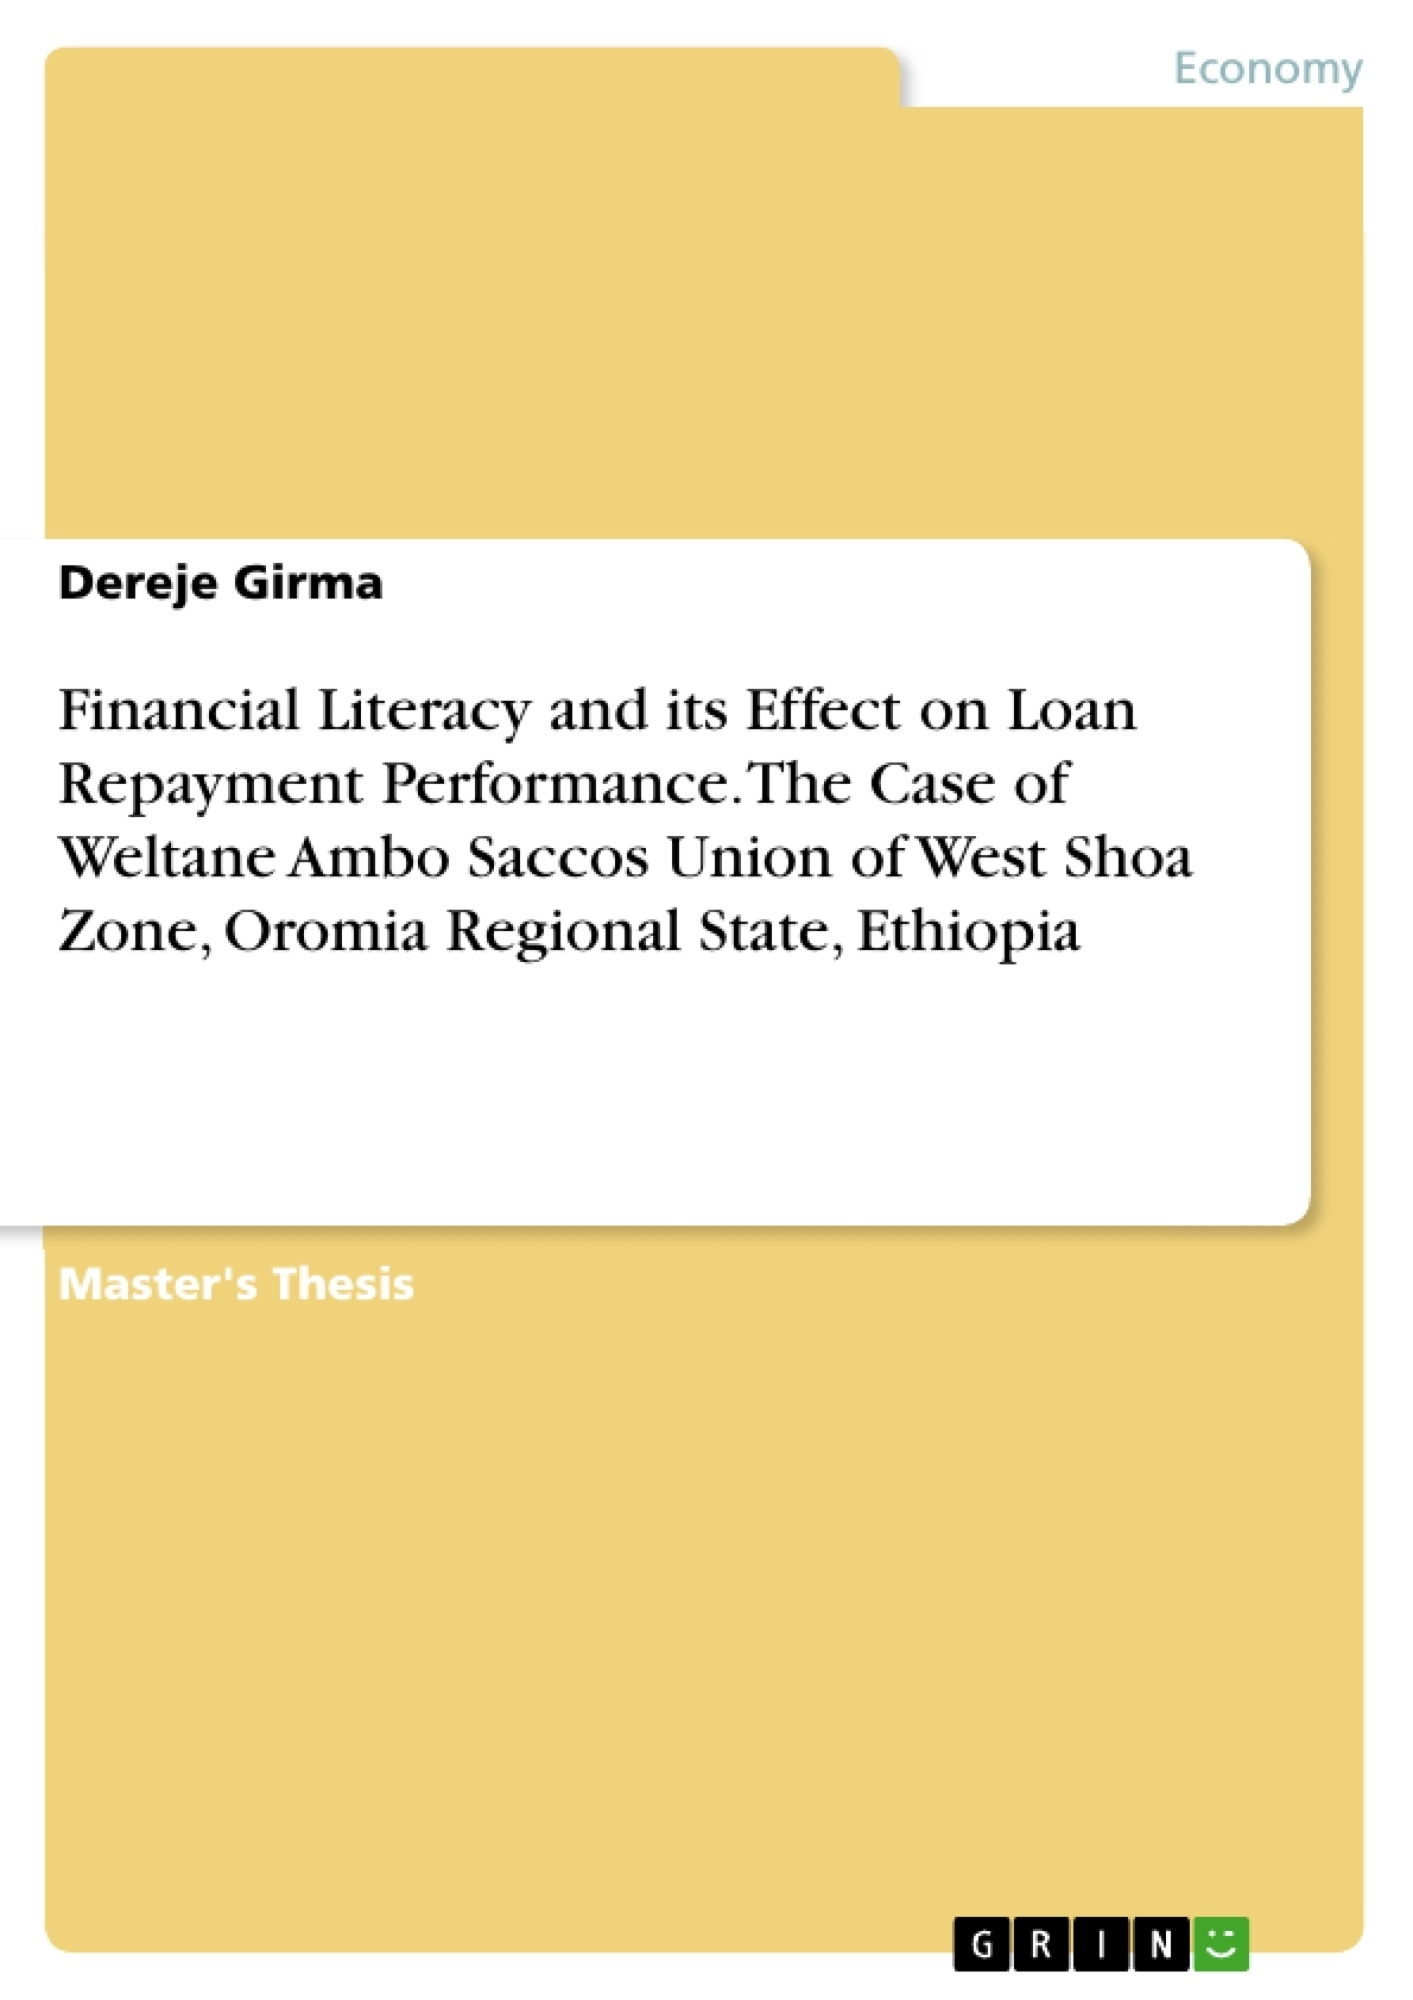 Title: Financial Literacy and its Effect on Loan Repayment Performance. The Case of Weltane Ambo Saccos Union of West Shoa Zone, Oromia Regional State, Ethiopia